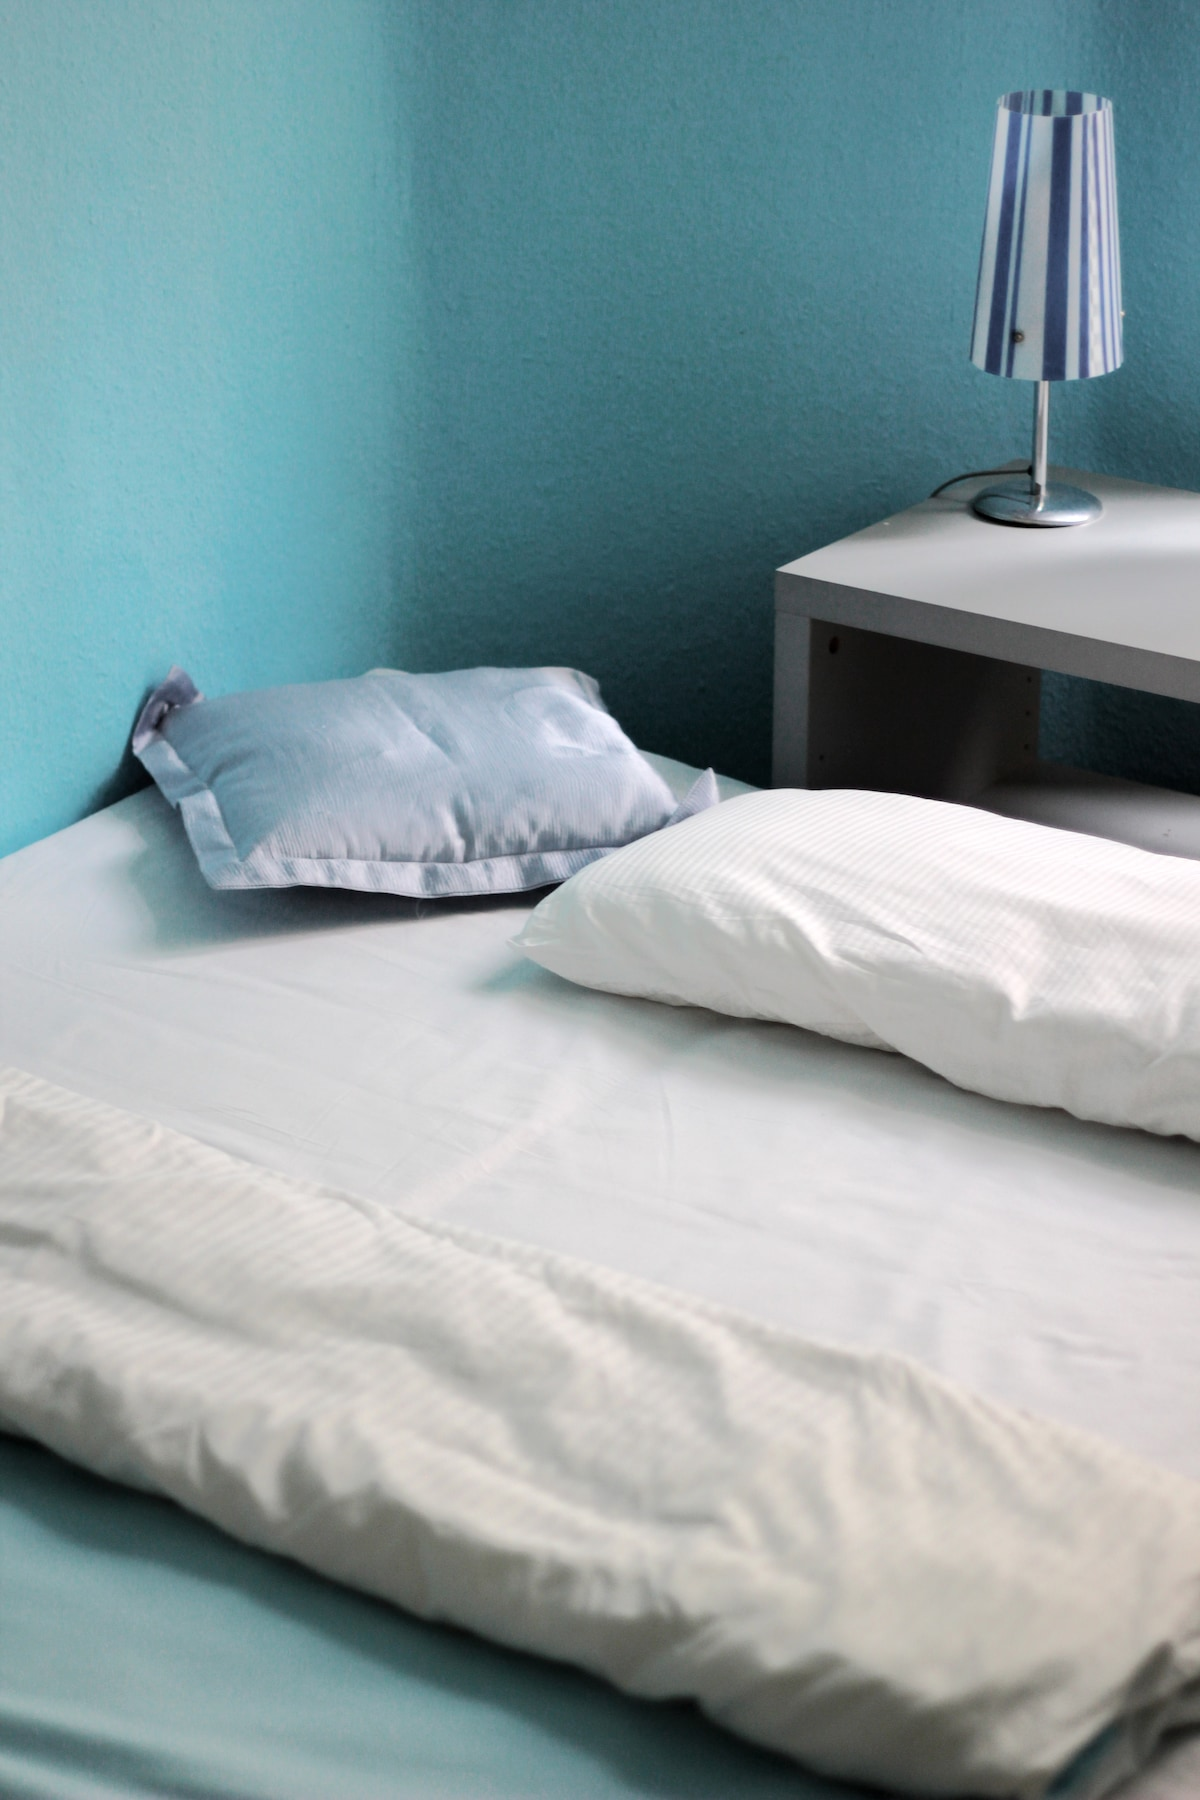 Your bed...